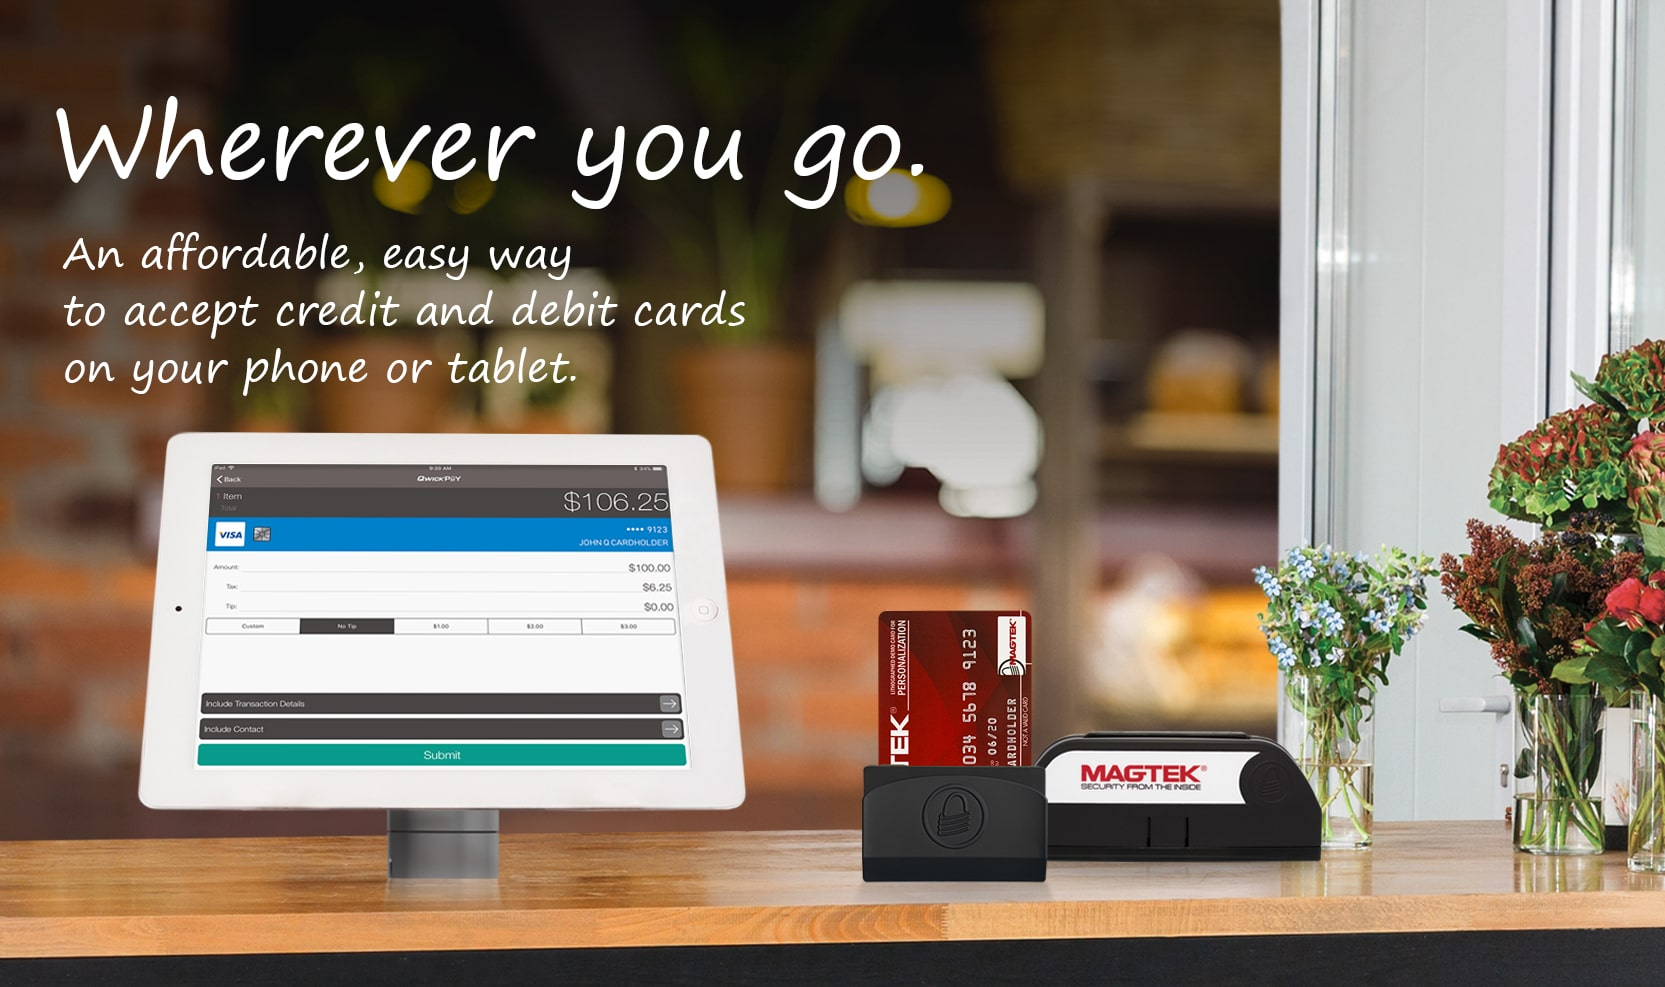 An affordable, easy way to accept credit and debit cards on your phone and tablet